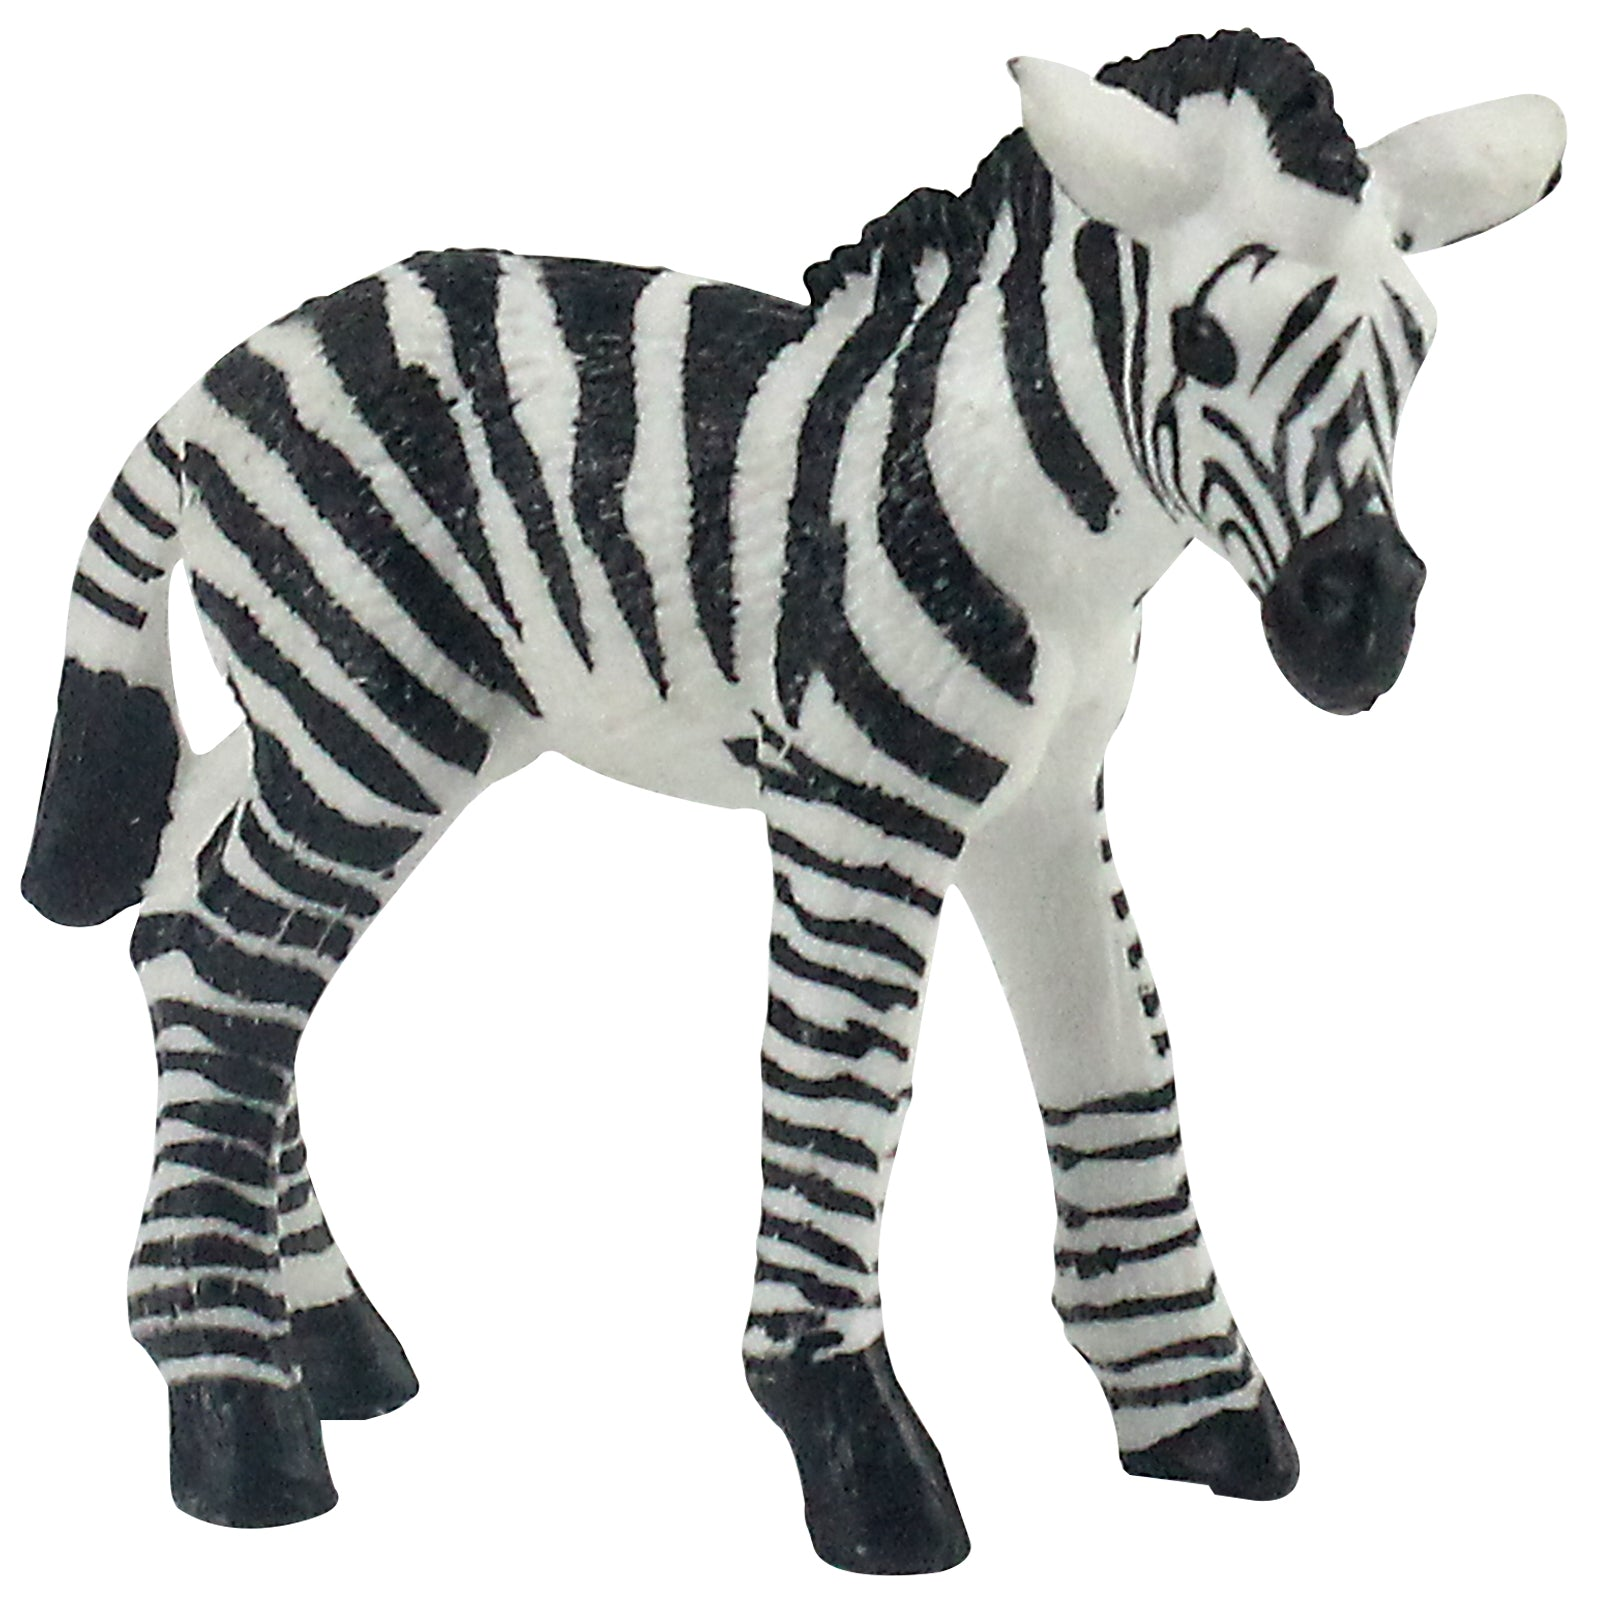 Baby Zebra Figure Height 2.4-inch